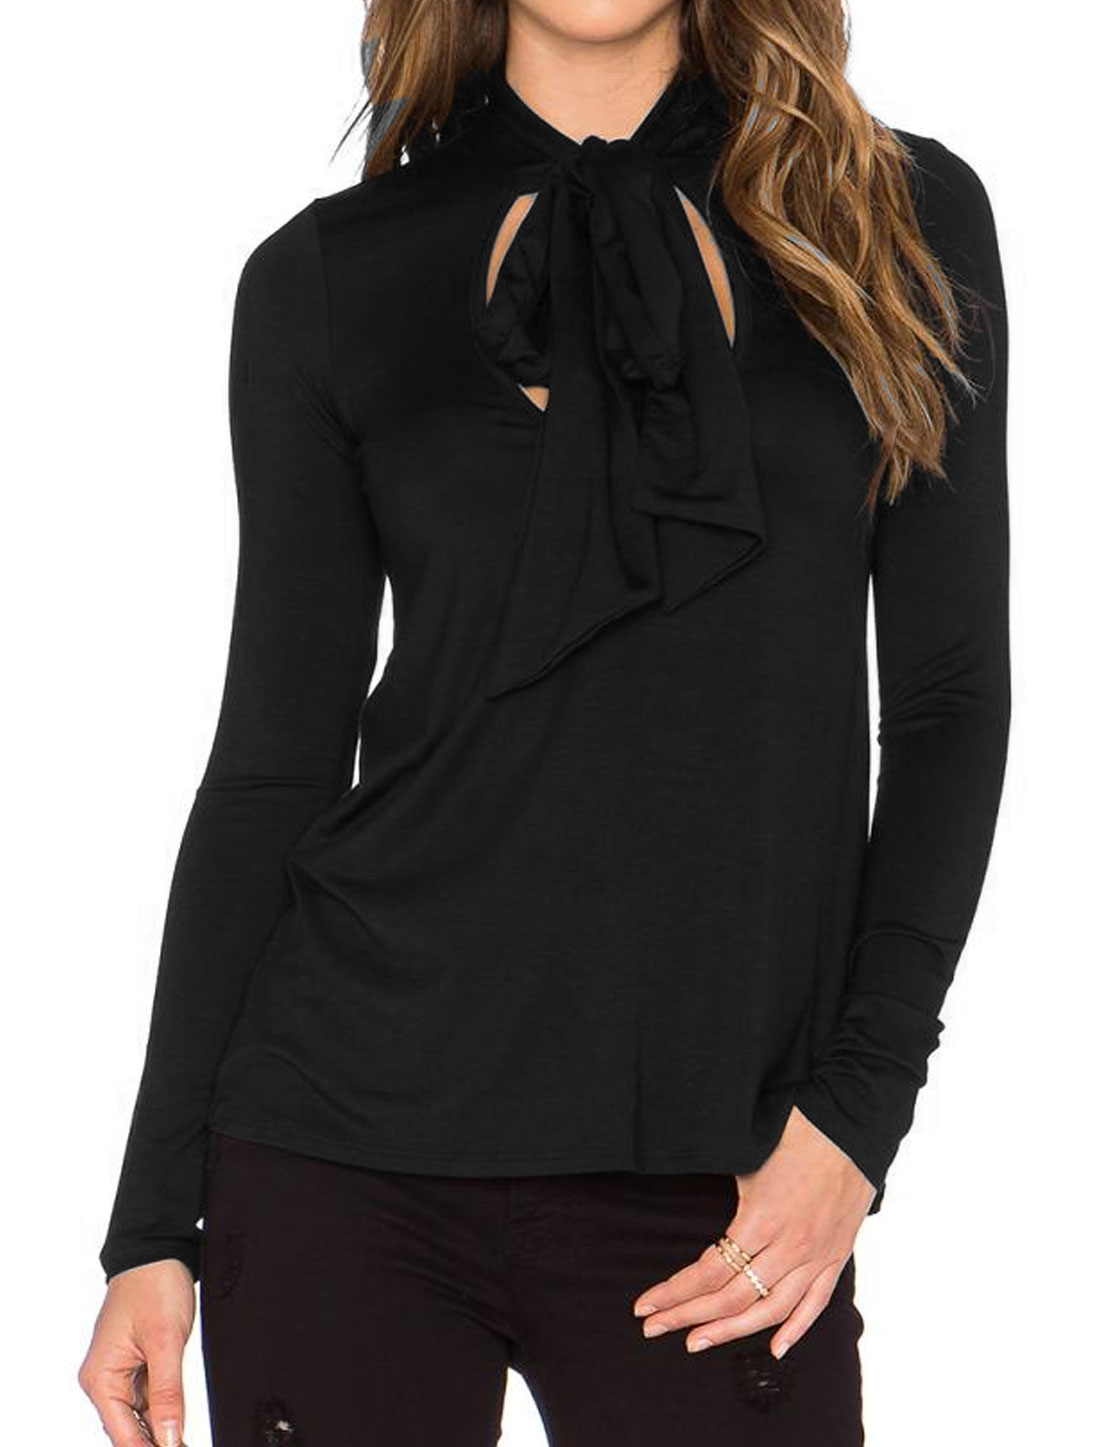 Ladies Scoop Neck Self Tie Front Design Long Sleeves Top Black M